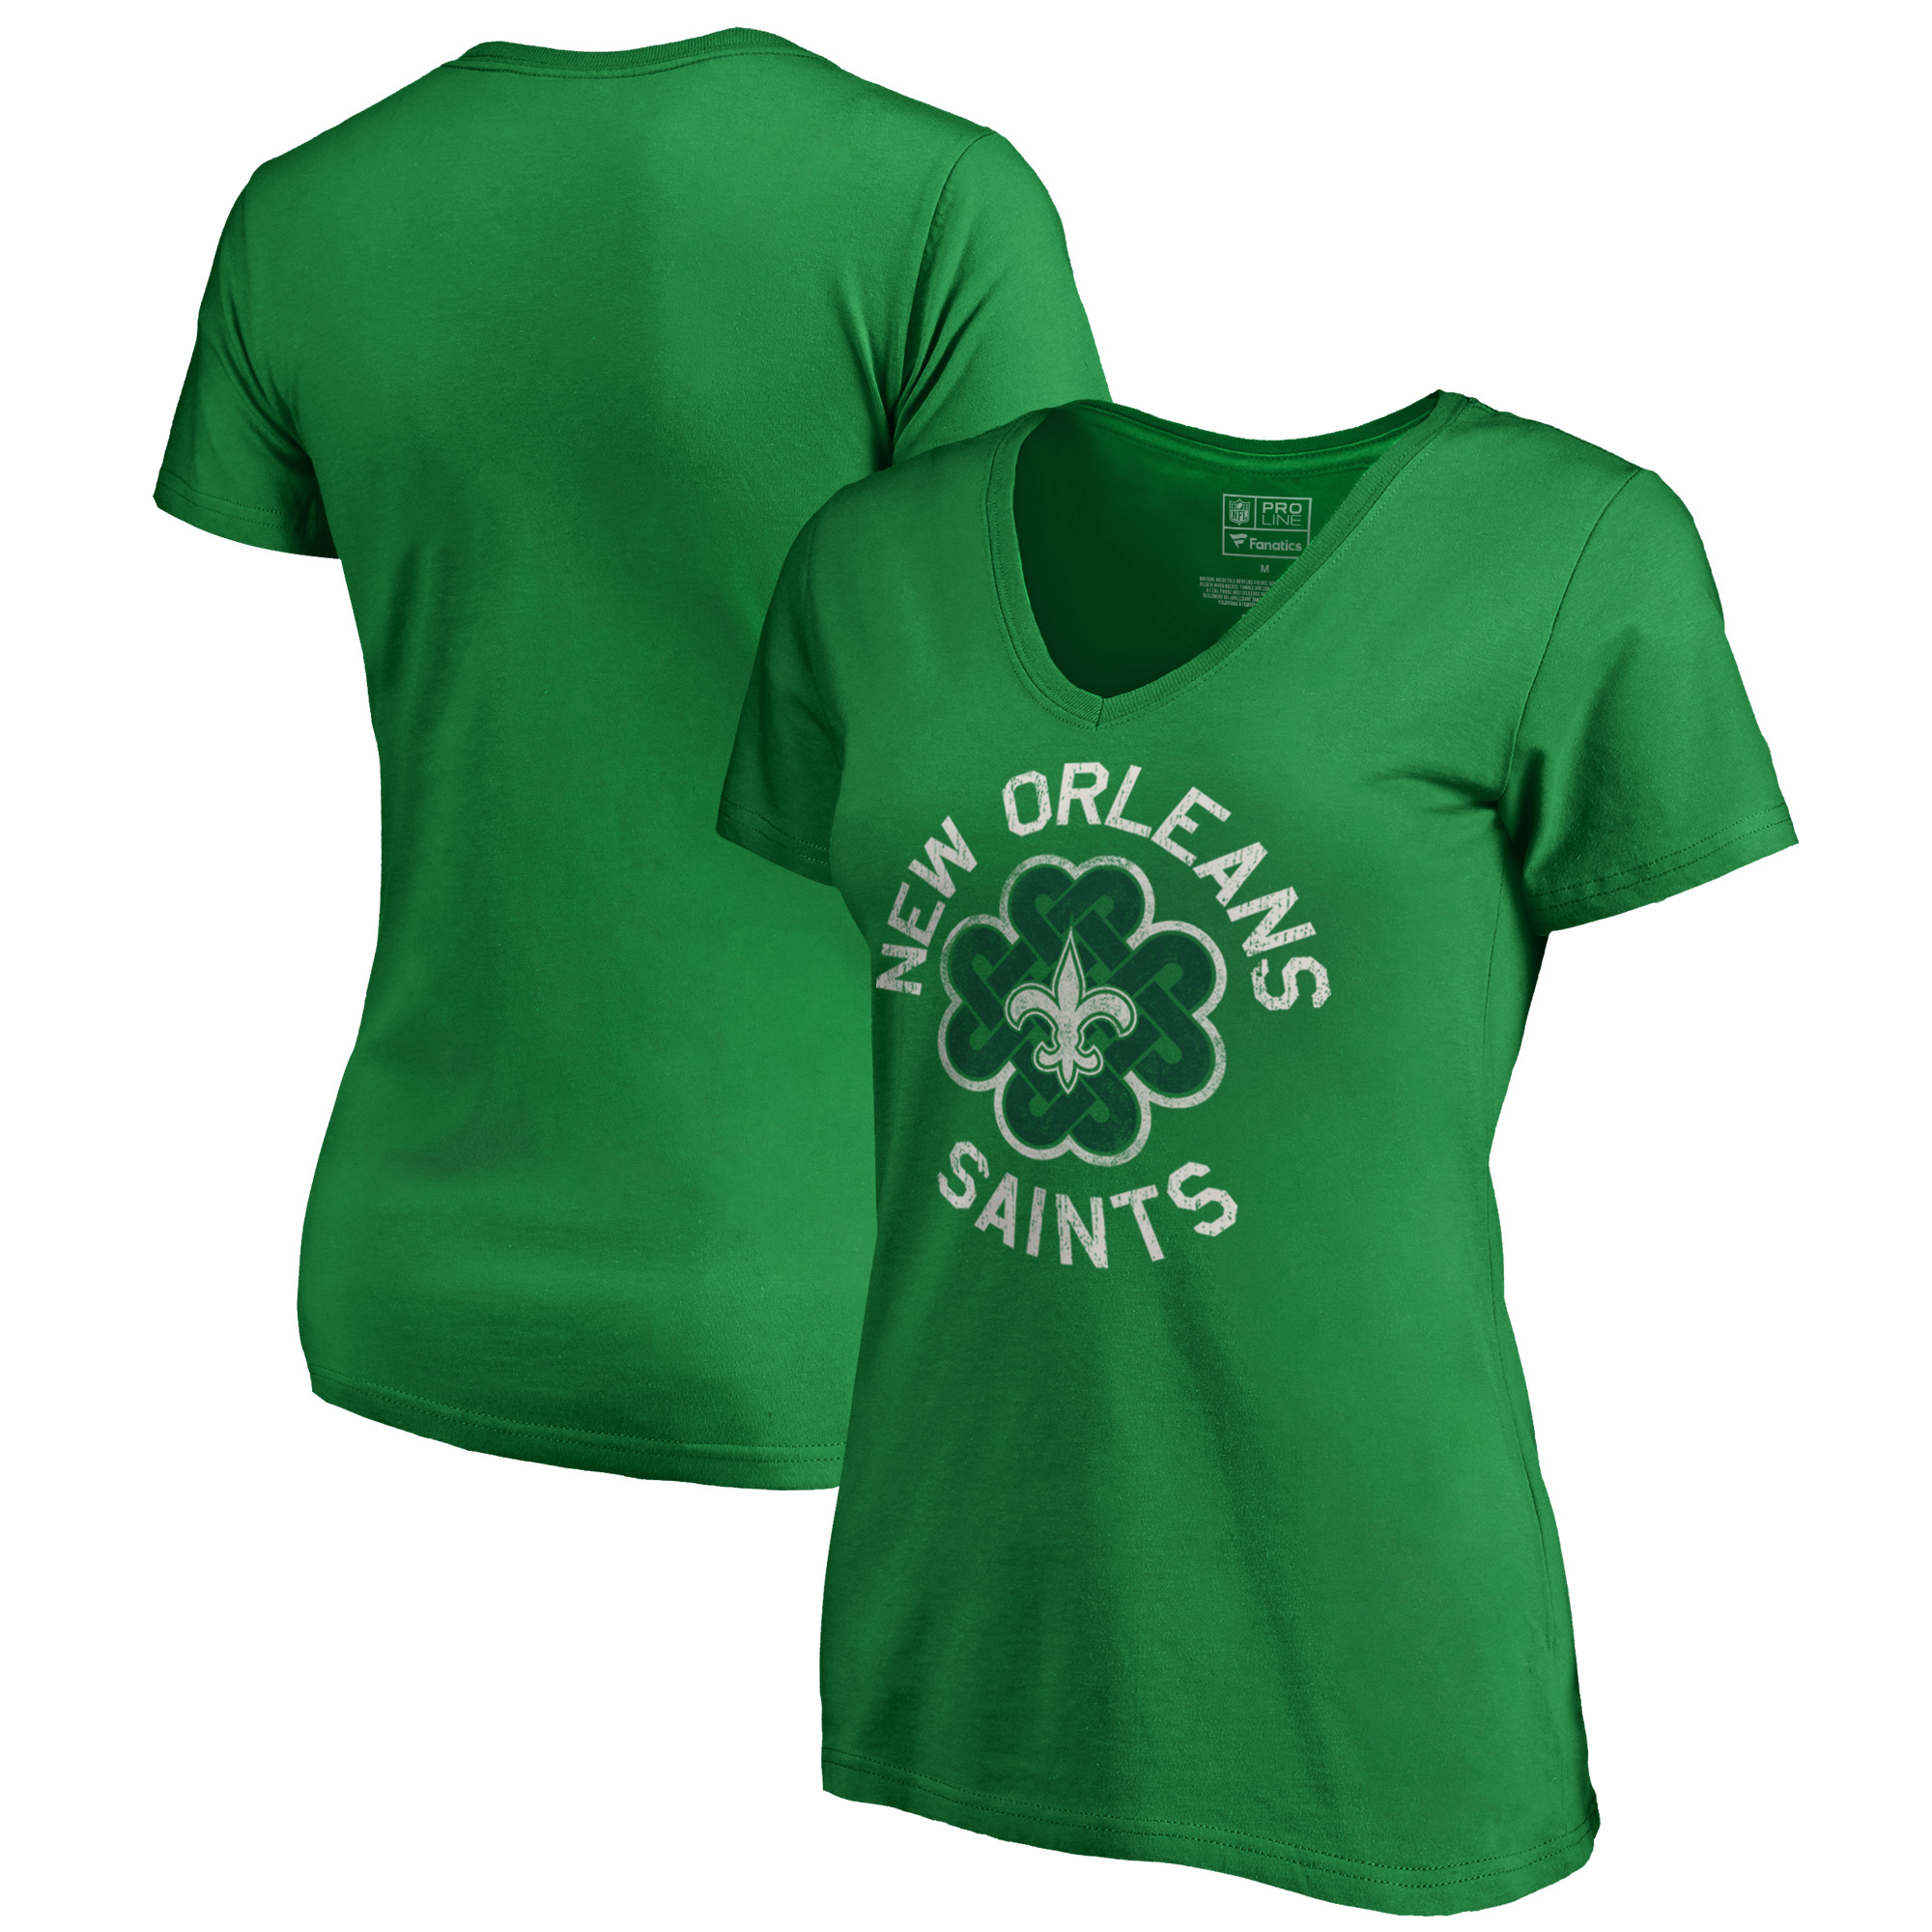 New Orleans Saints NFL Pro Line by Fanatics Branded Women's Plus Size St. Patrick's Day Luck Tradition V-Neck T-Shirt - Kelly Green